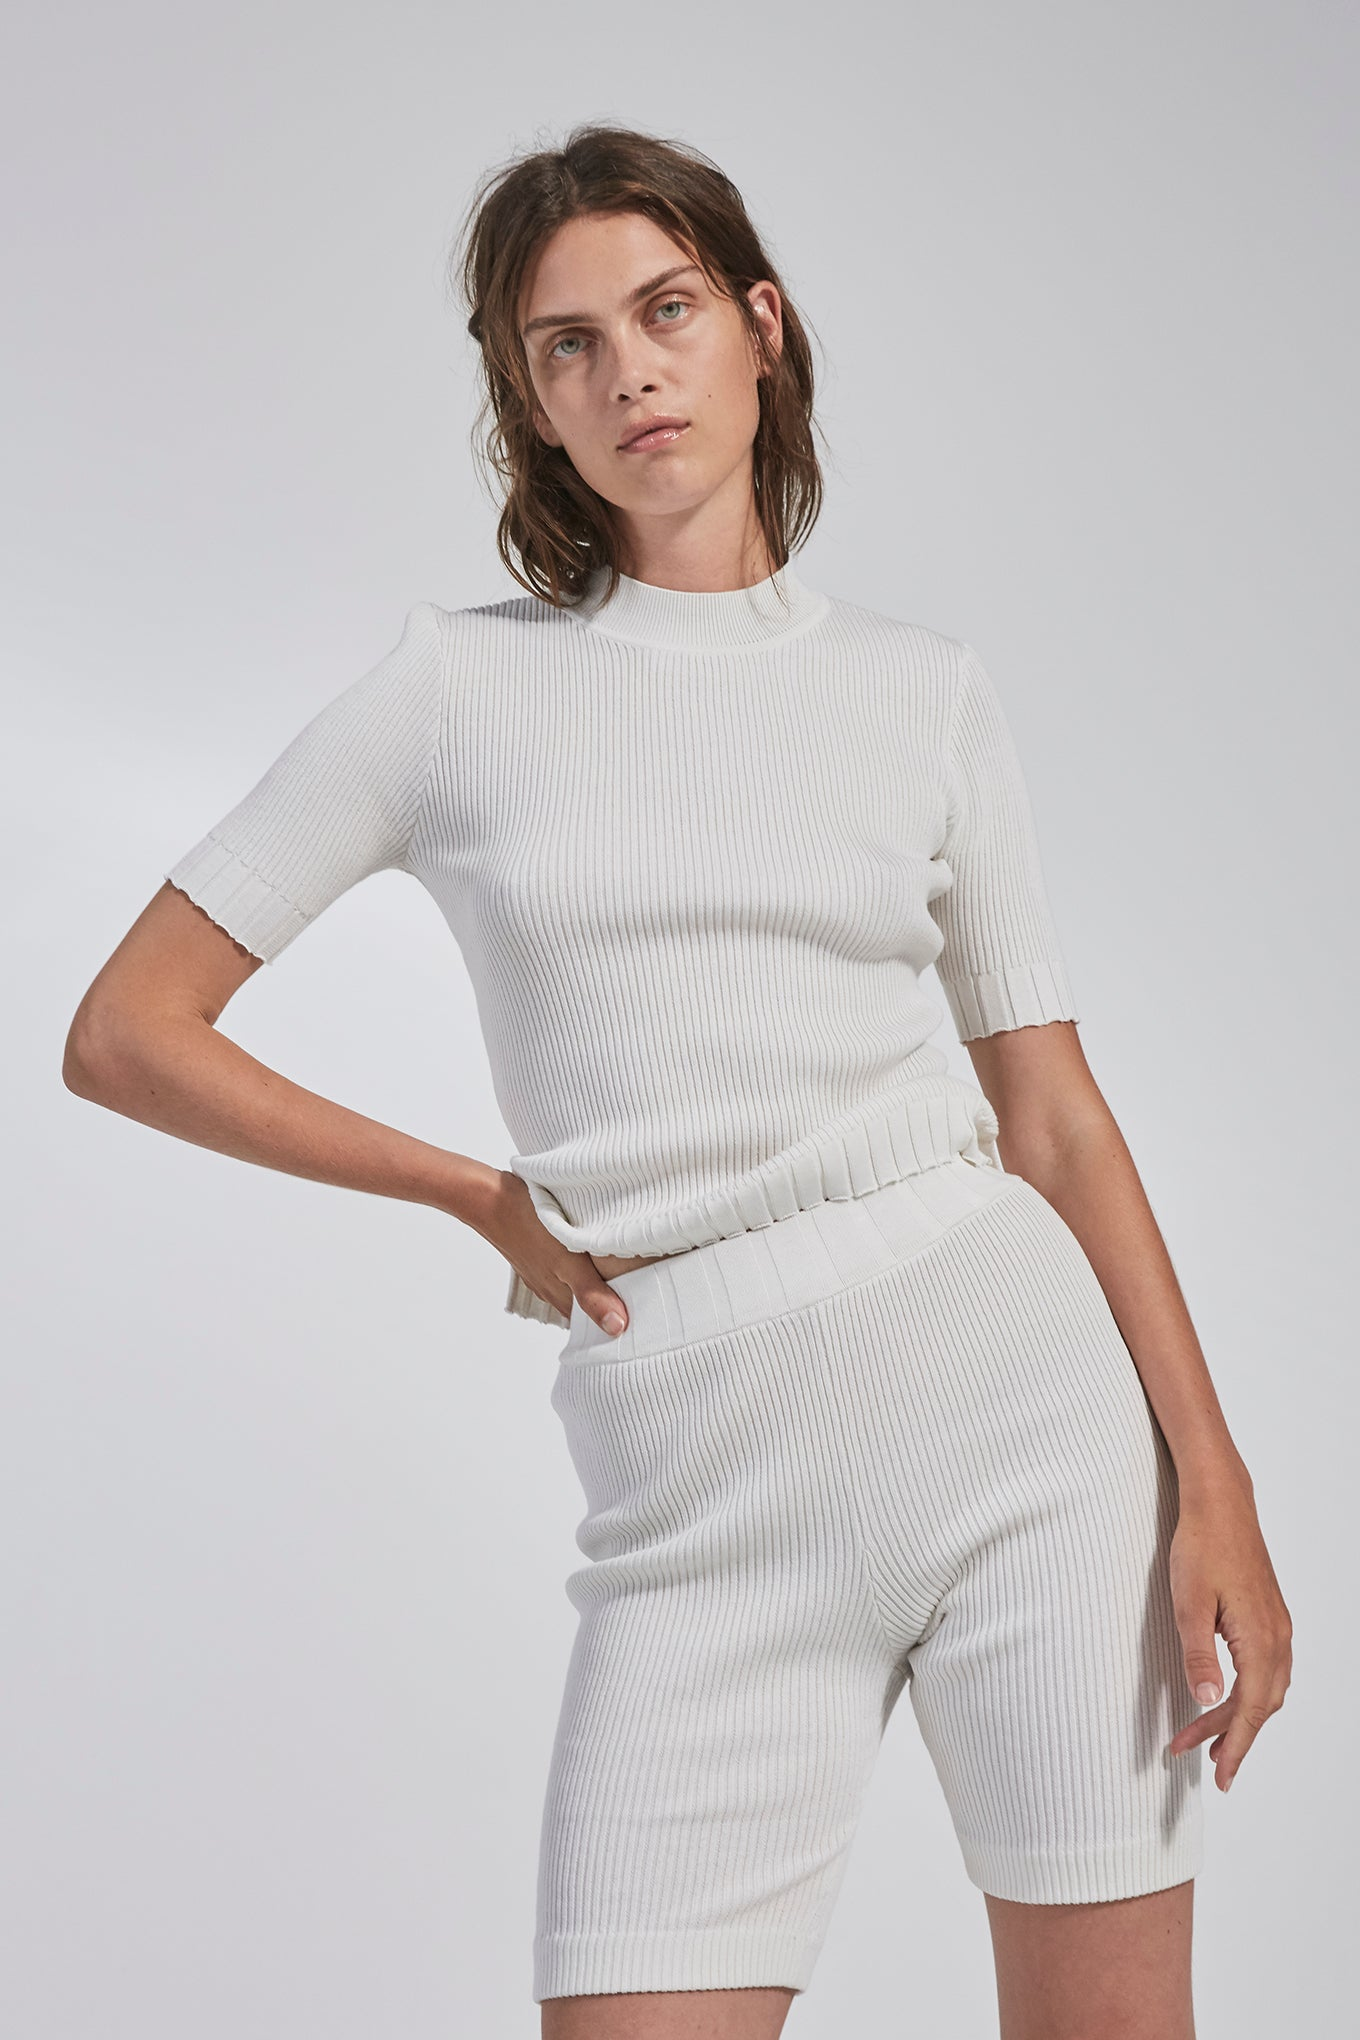 Billie SS Knit - White - Silk/Cotton